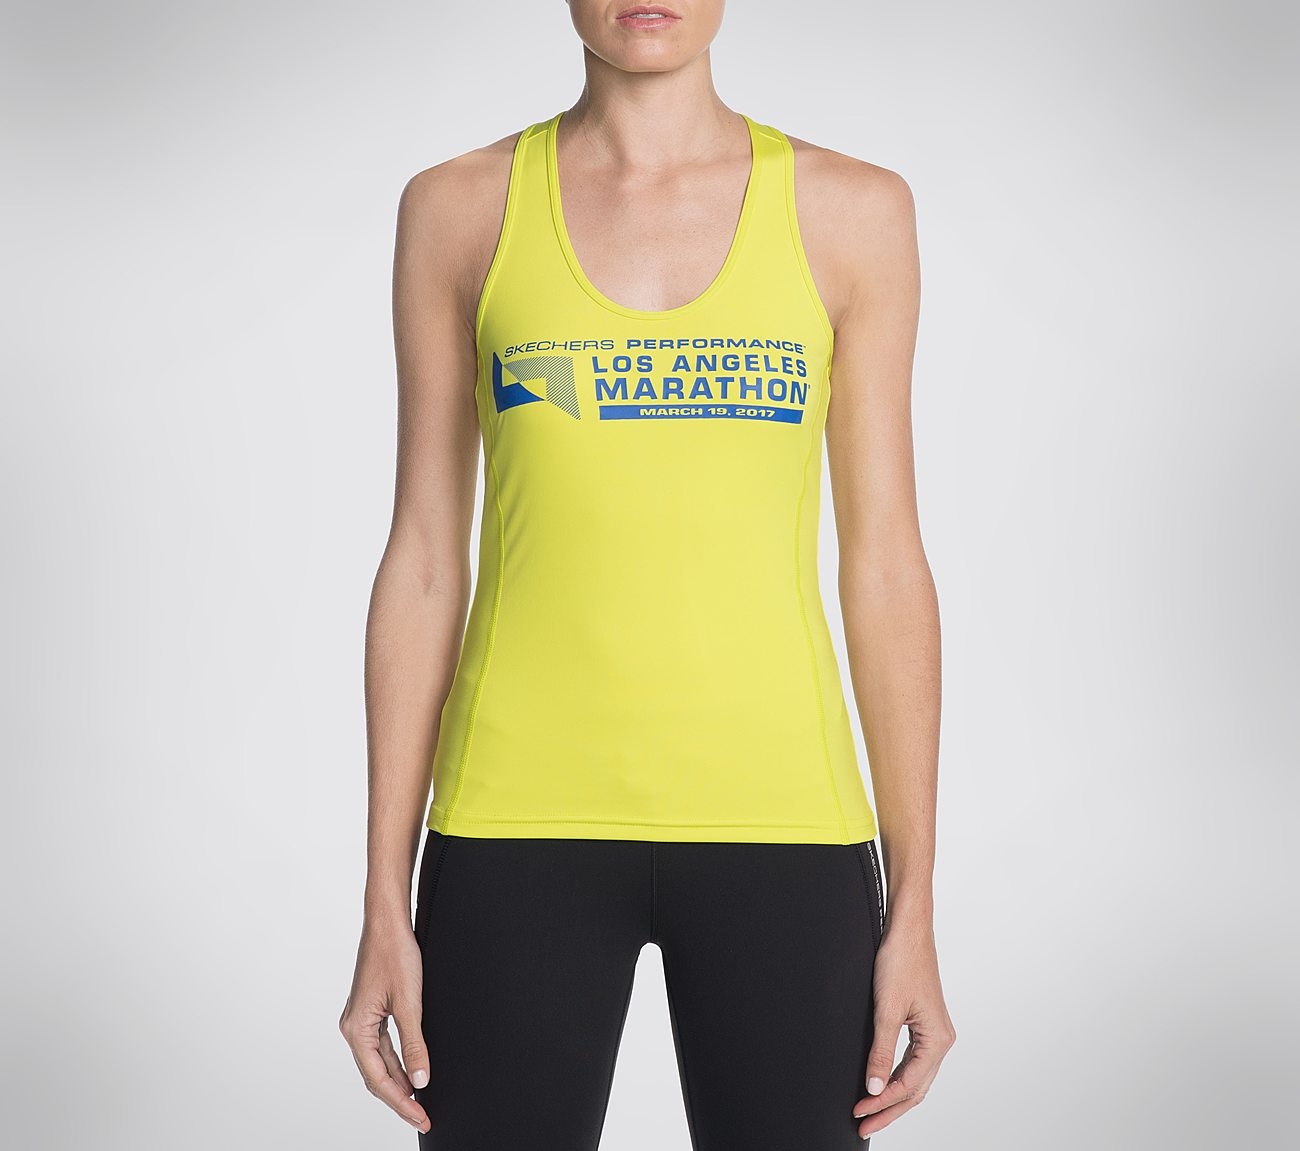 e9fe9a88dcbd77 Singlet Tank Top Skechers Performance Los Angeles Marathon. Click tap to  zoom